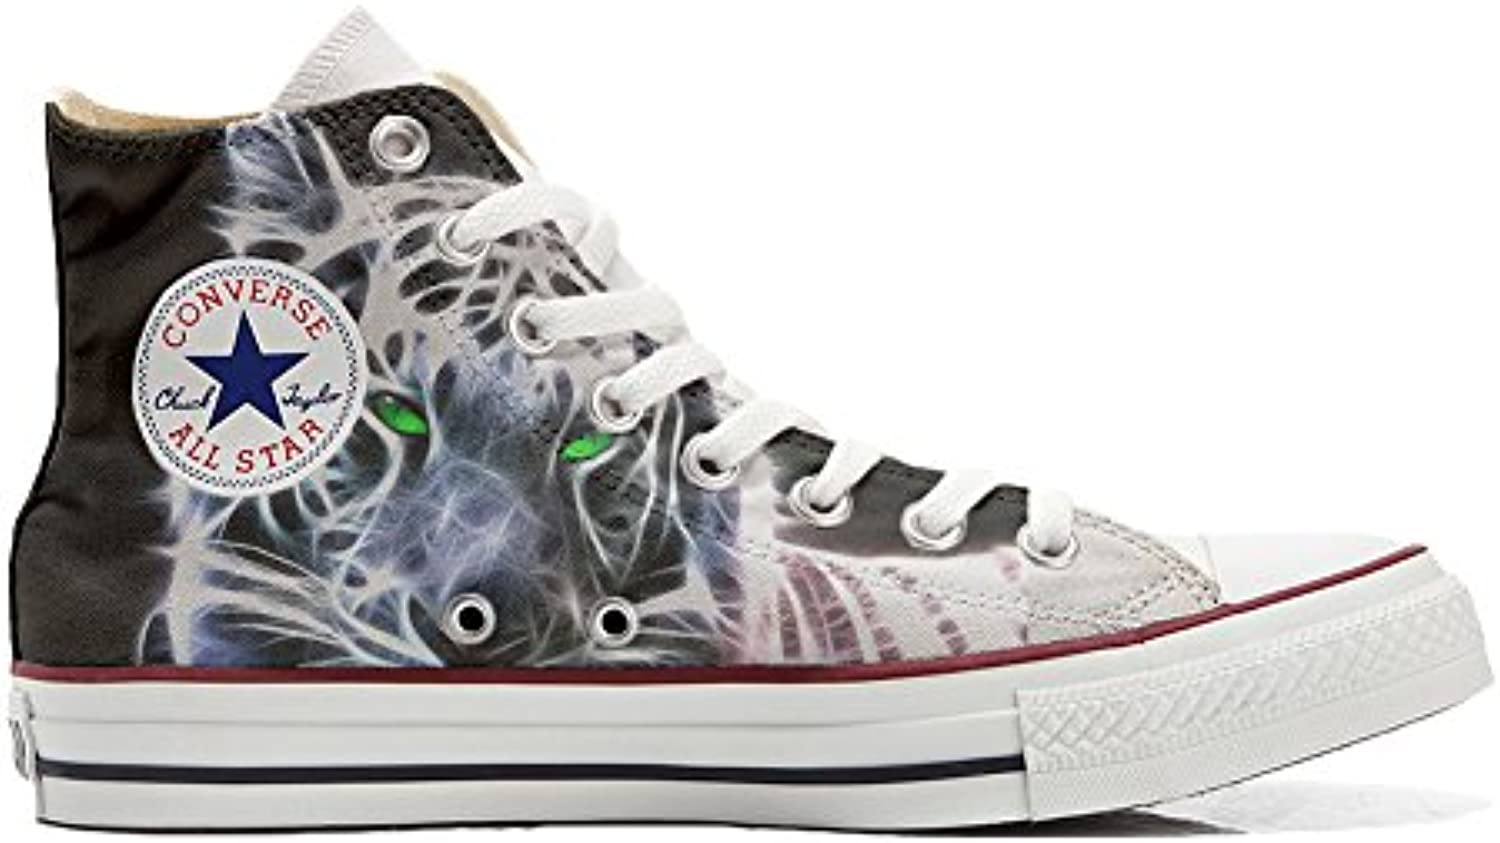 mys Converse All Star Hi Customized Personalisiert Schuhe (Gedruckte Schuhe) White Tiger with Green Eyes